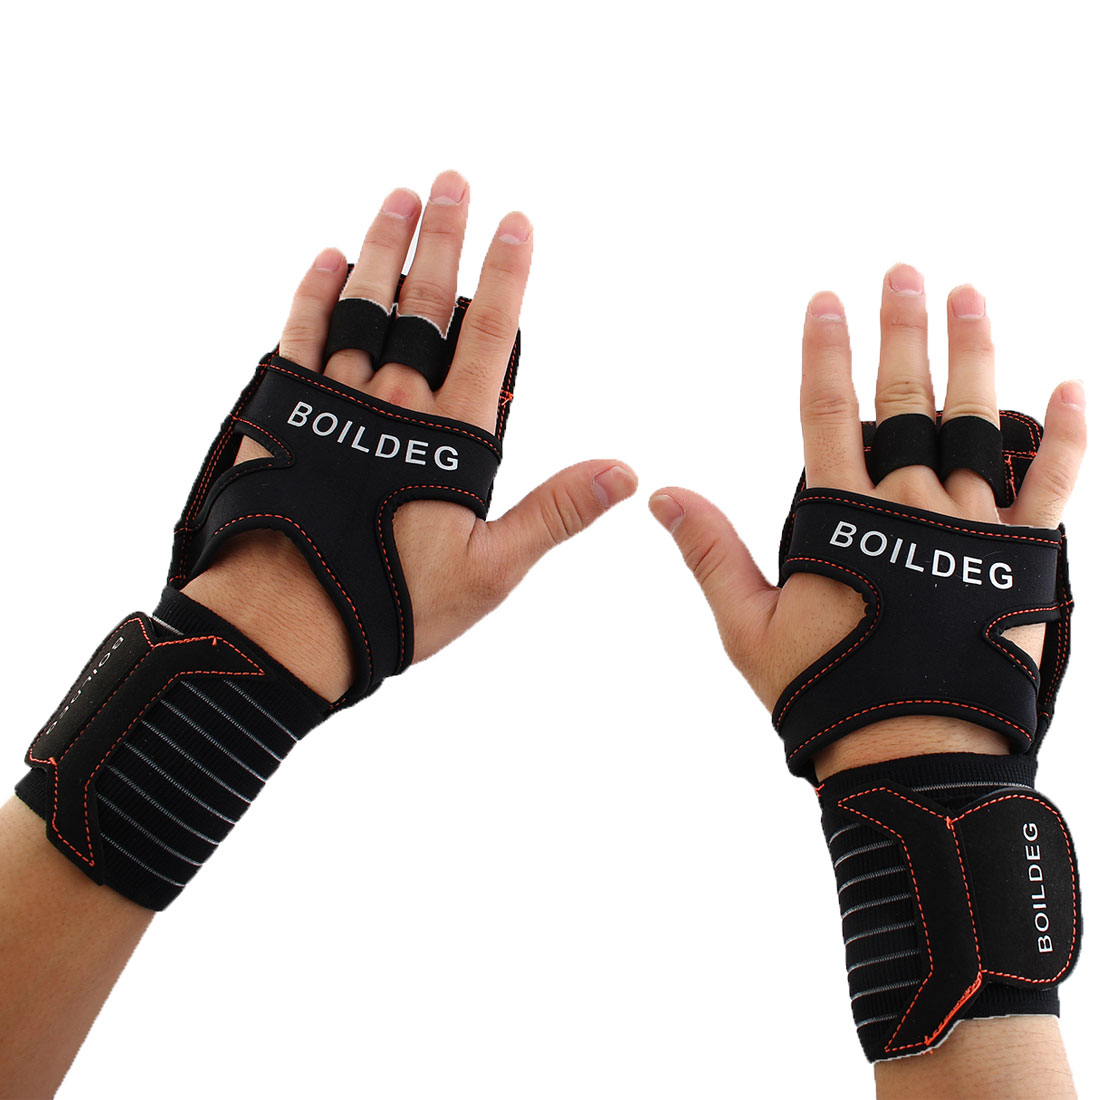 BOILDEG Authorized Unisex Sports Training Workout Mittens Wear-resisting Palm Support Fitness Gloves Orange L Pair